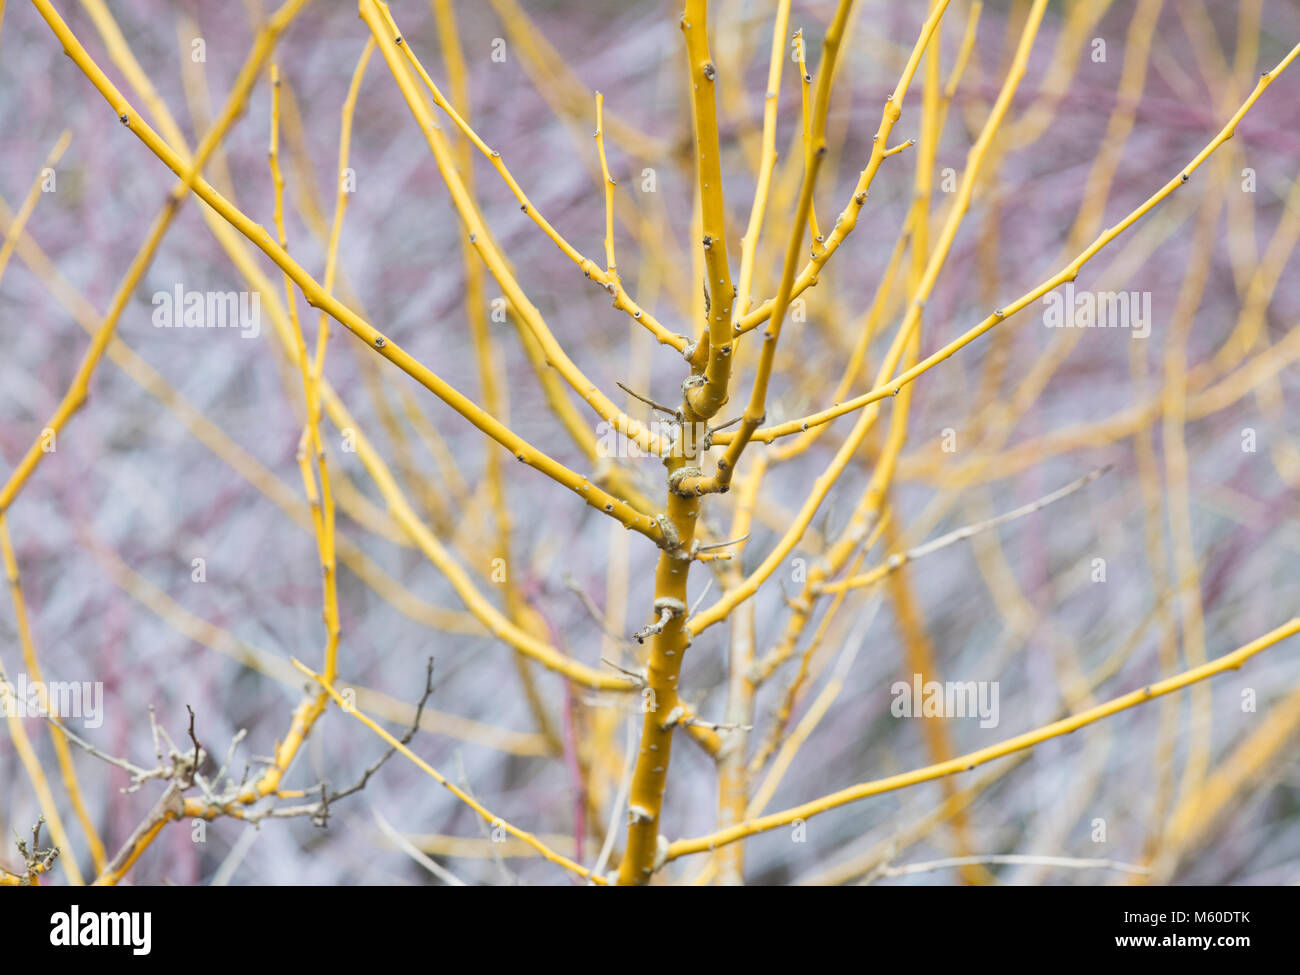 Styphnolobium japonicum. Japanese pagoda tree stems in winter. England - Stock Image